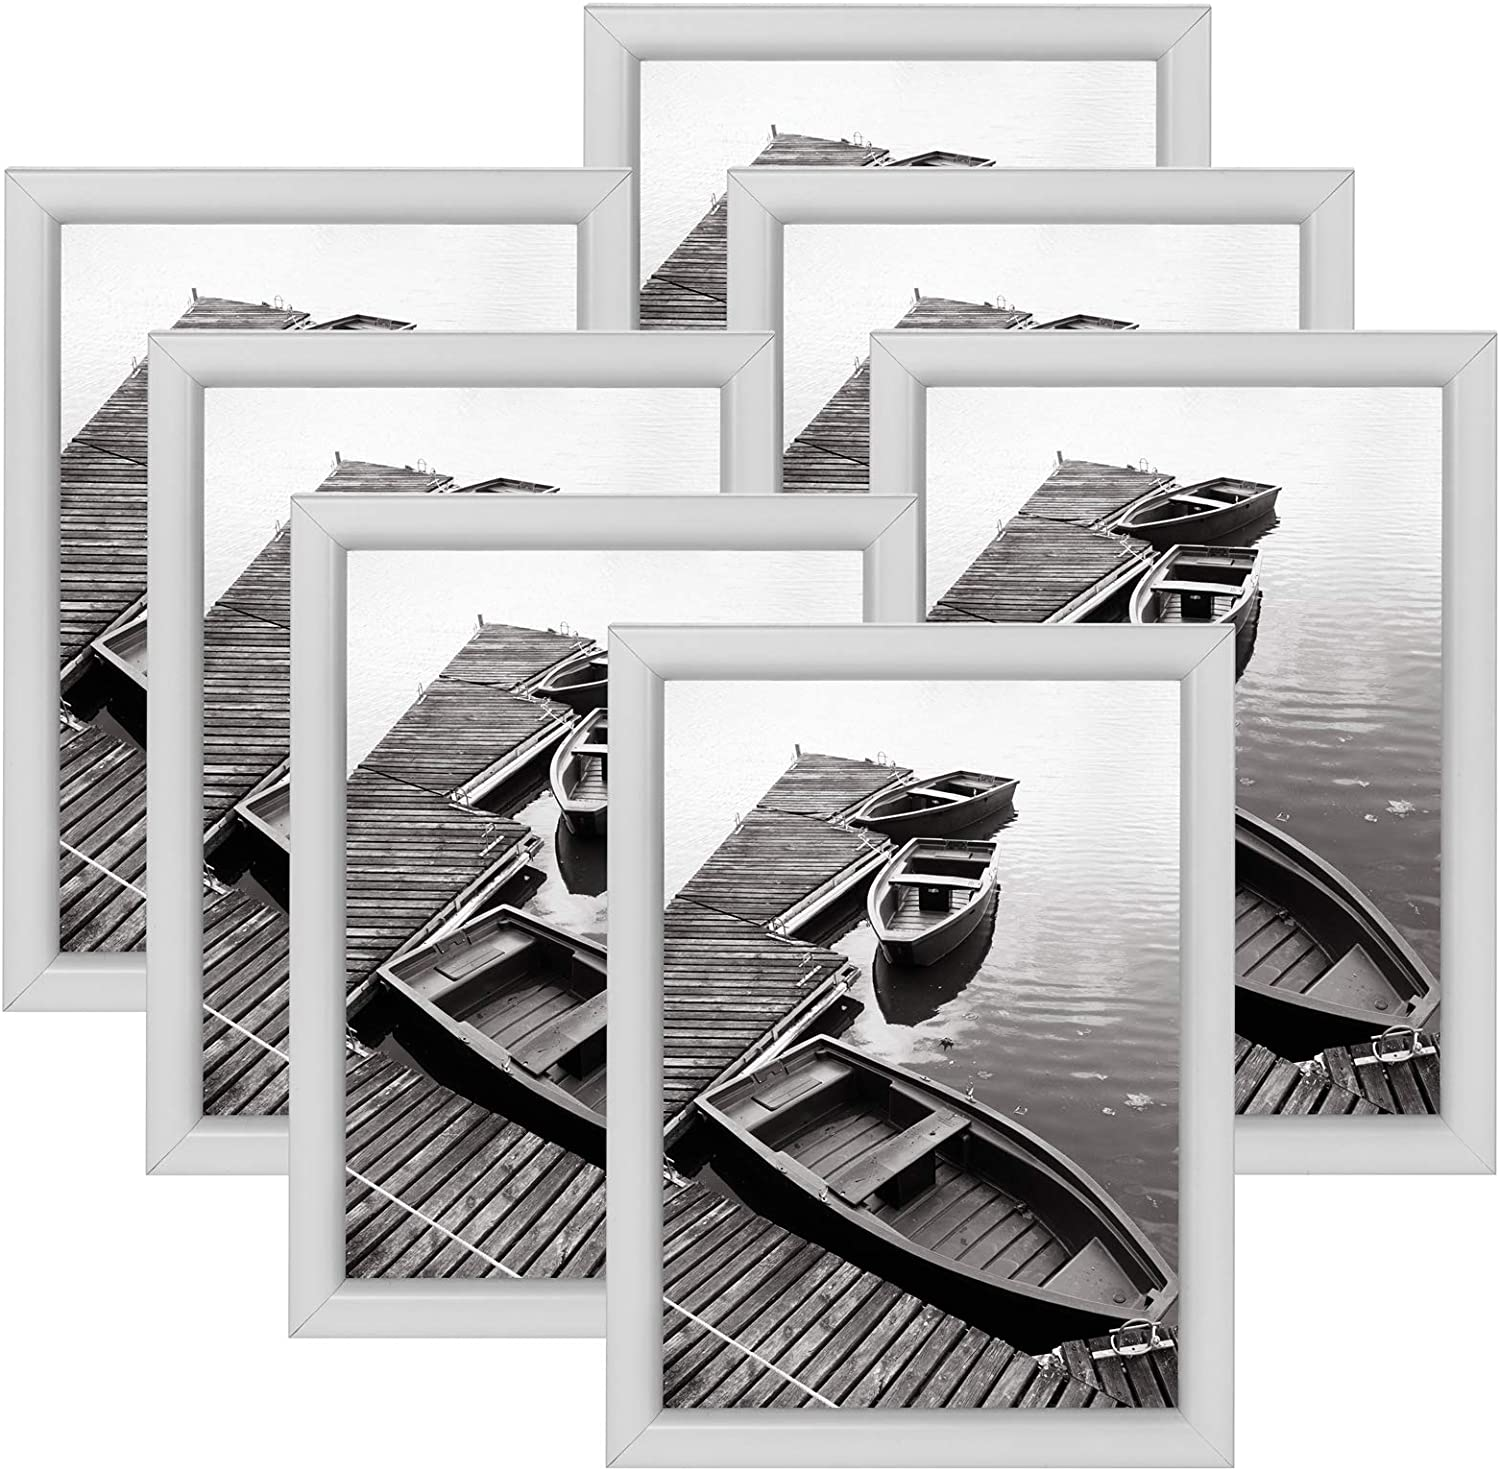 Giverny 5x7 Picture Frames Set of 7, Gray Photo Frames for Wall or Tabletop Display, Simple Design Glossy Finish Frame Perfect for Home Decoration, Office, Hotel and Various Ceremonies Praties